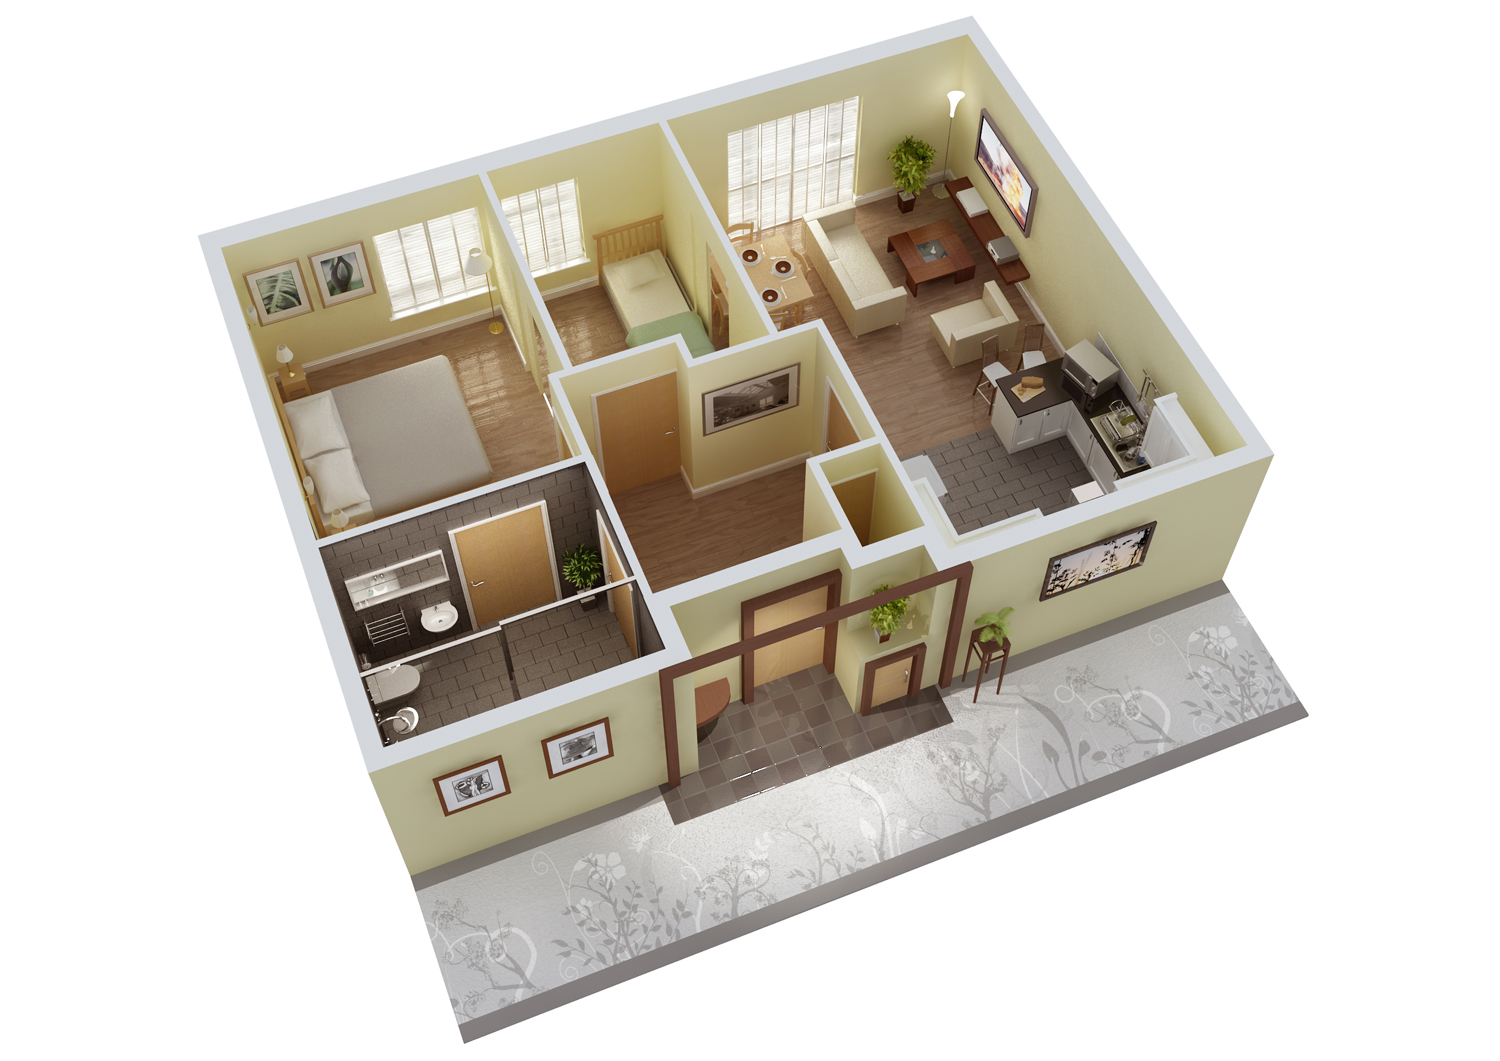 Mathematics resources project 3d floor plan for 3d house floor plans